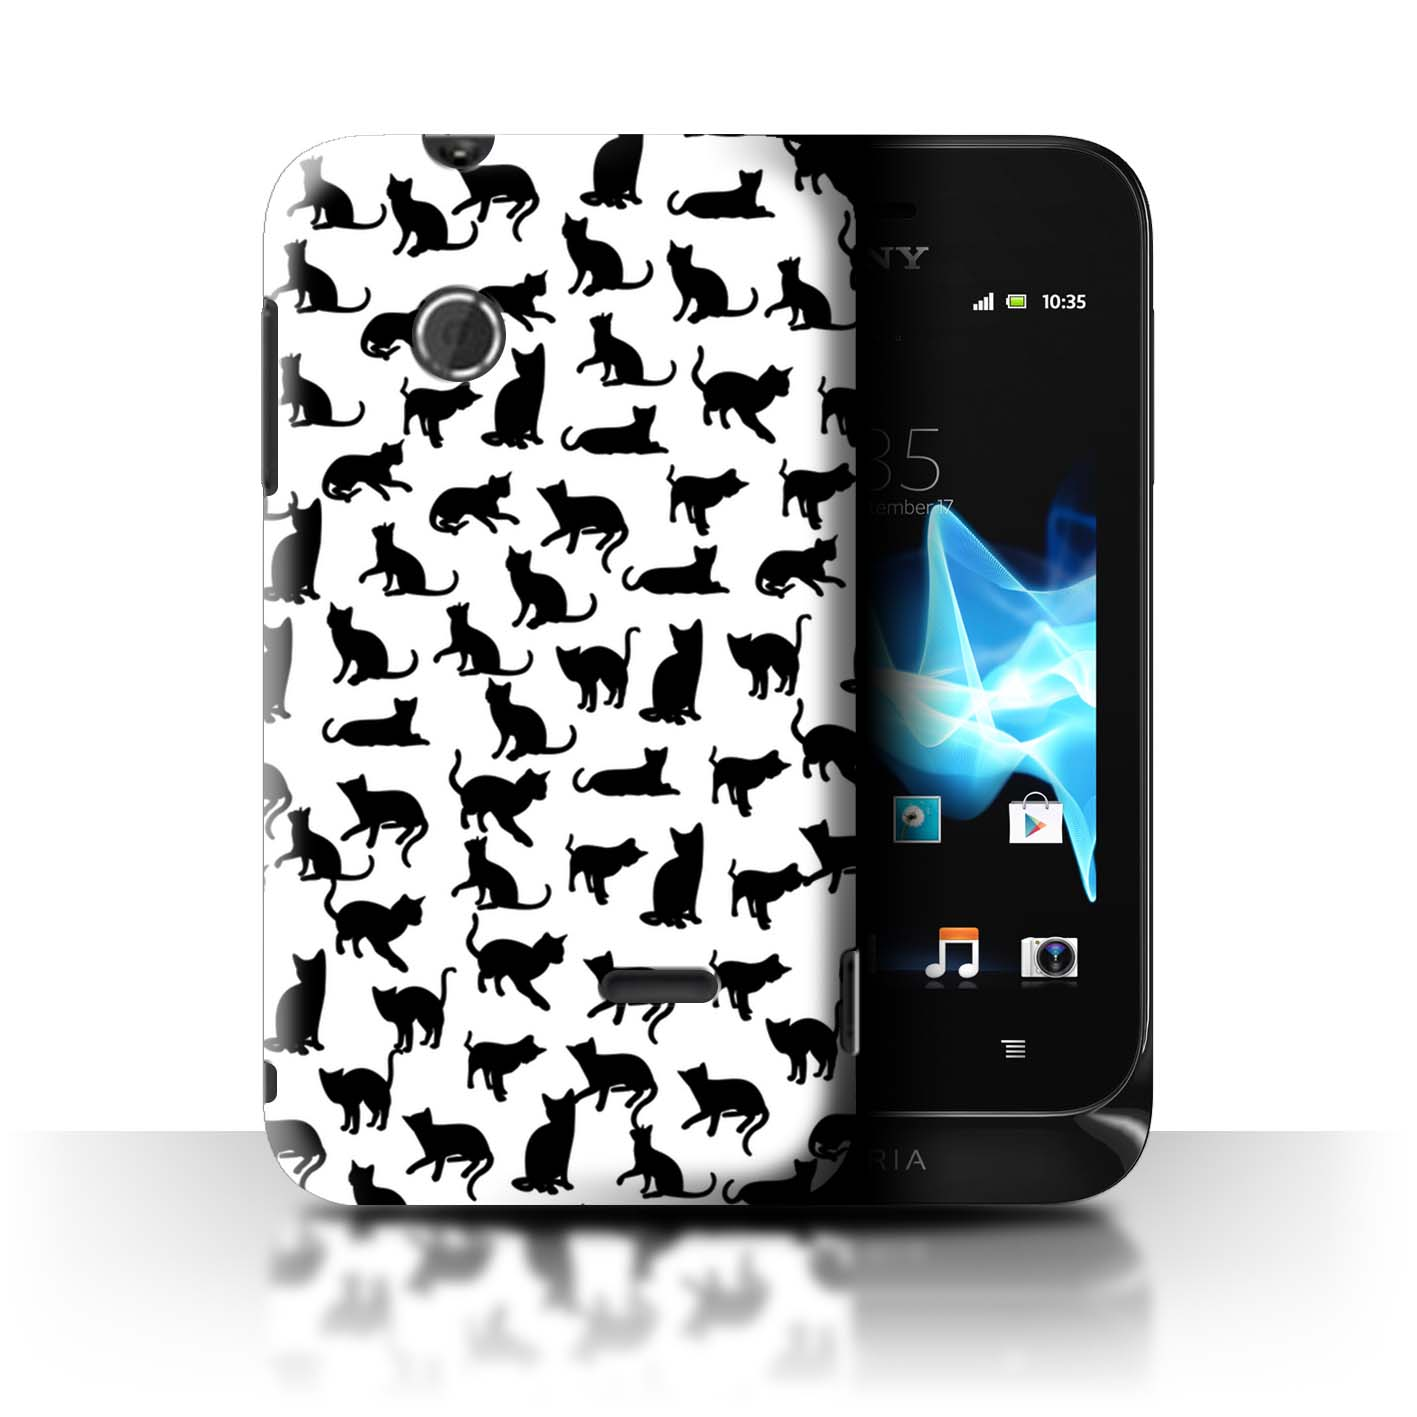 STUFF4-Back-Case-Cover-Skin-for-Sony-Xperia-Tipo-ST21-Cute-Cartoon-Cat